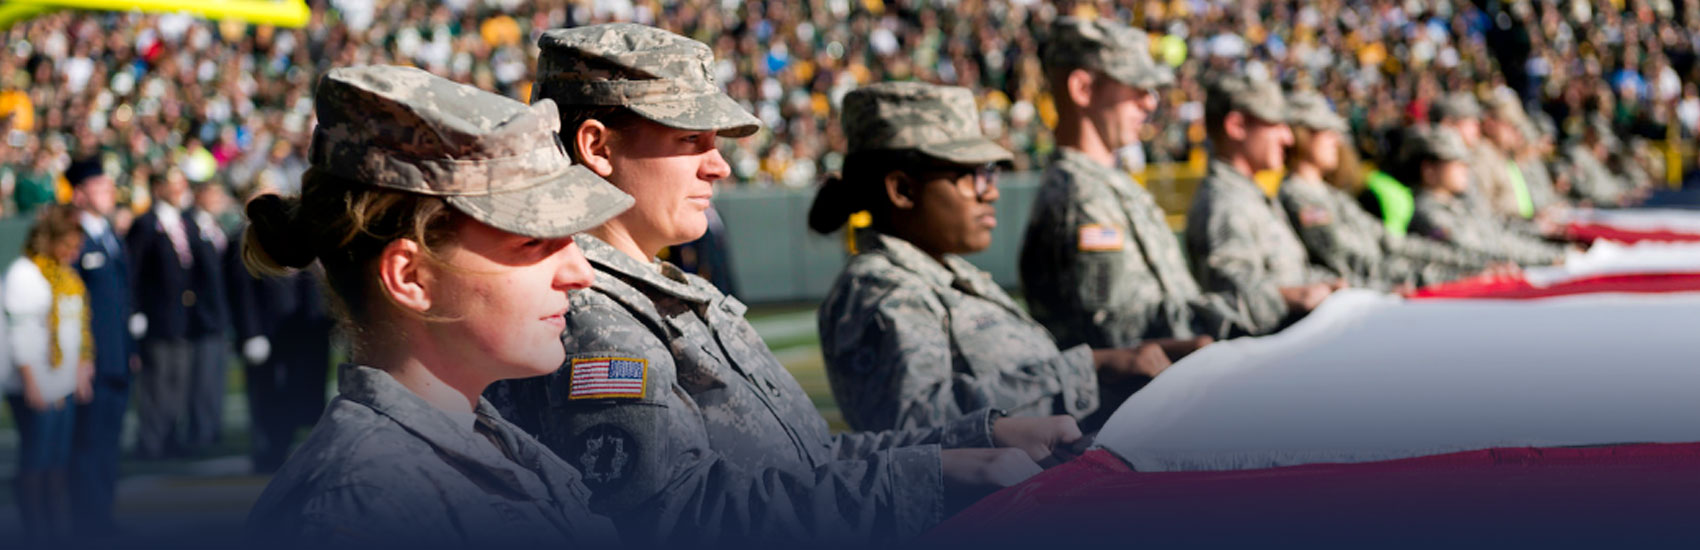 National Guard at Packer Game